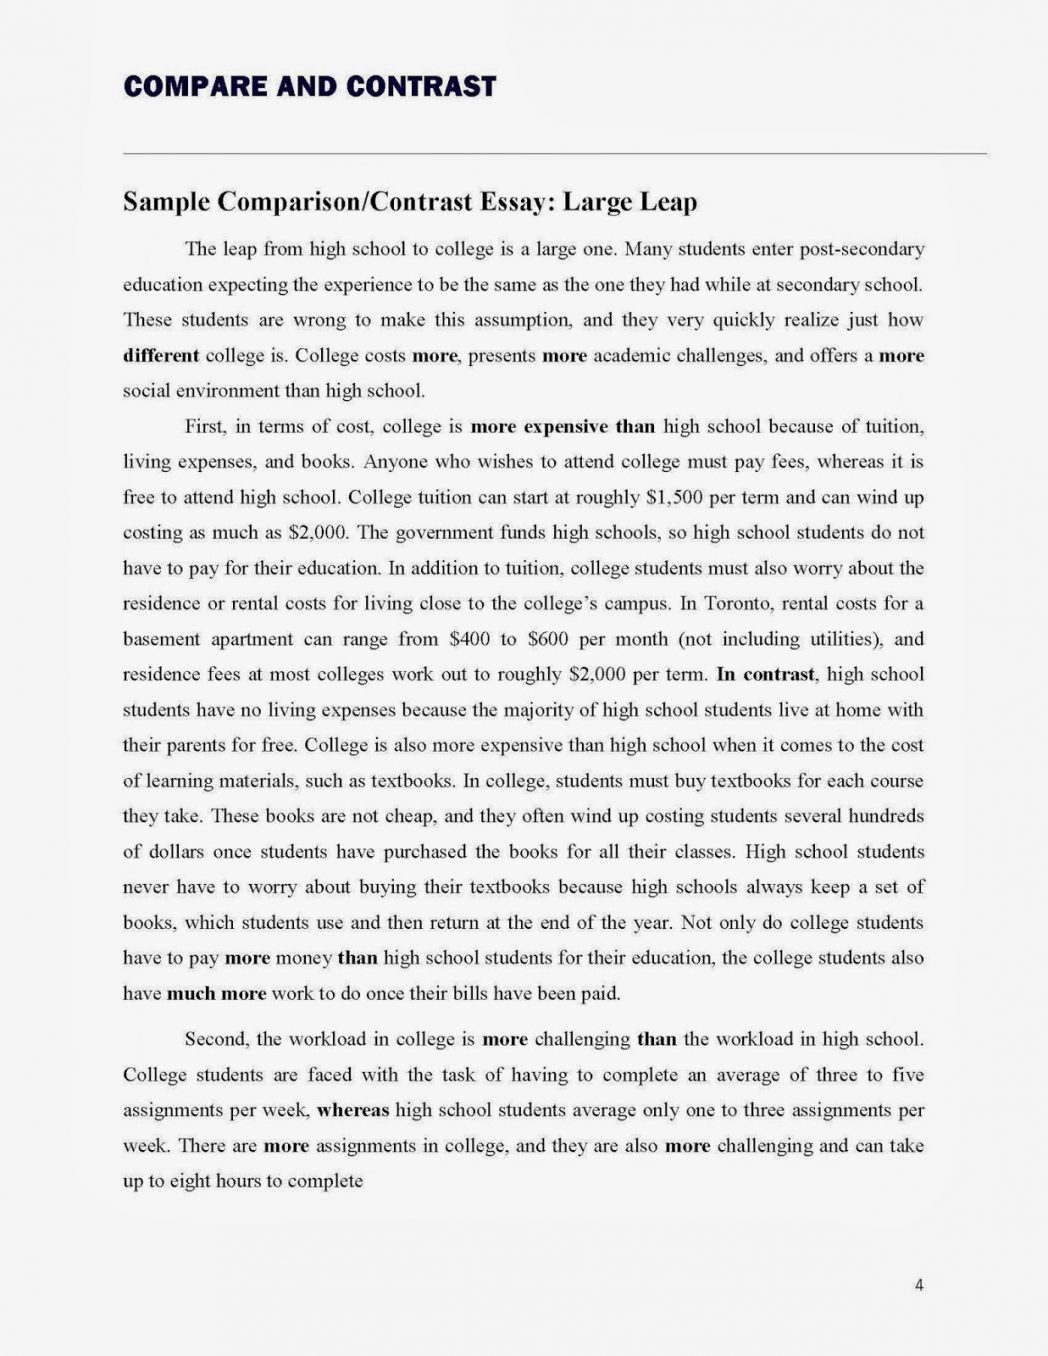 016 Essay Example How To Write Compare And Contrast On High School College Level Topics Structure Format Transitions Prompts Outline Introduction Template Examples Striking Block Method Conclusion Full